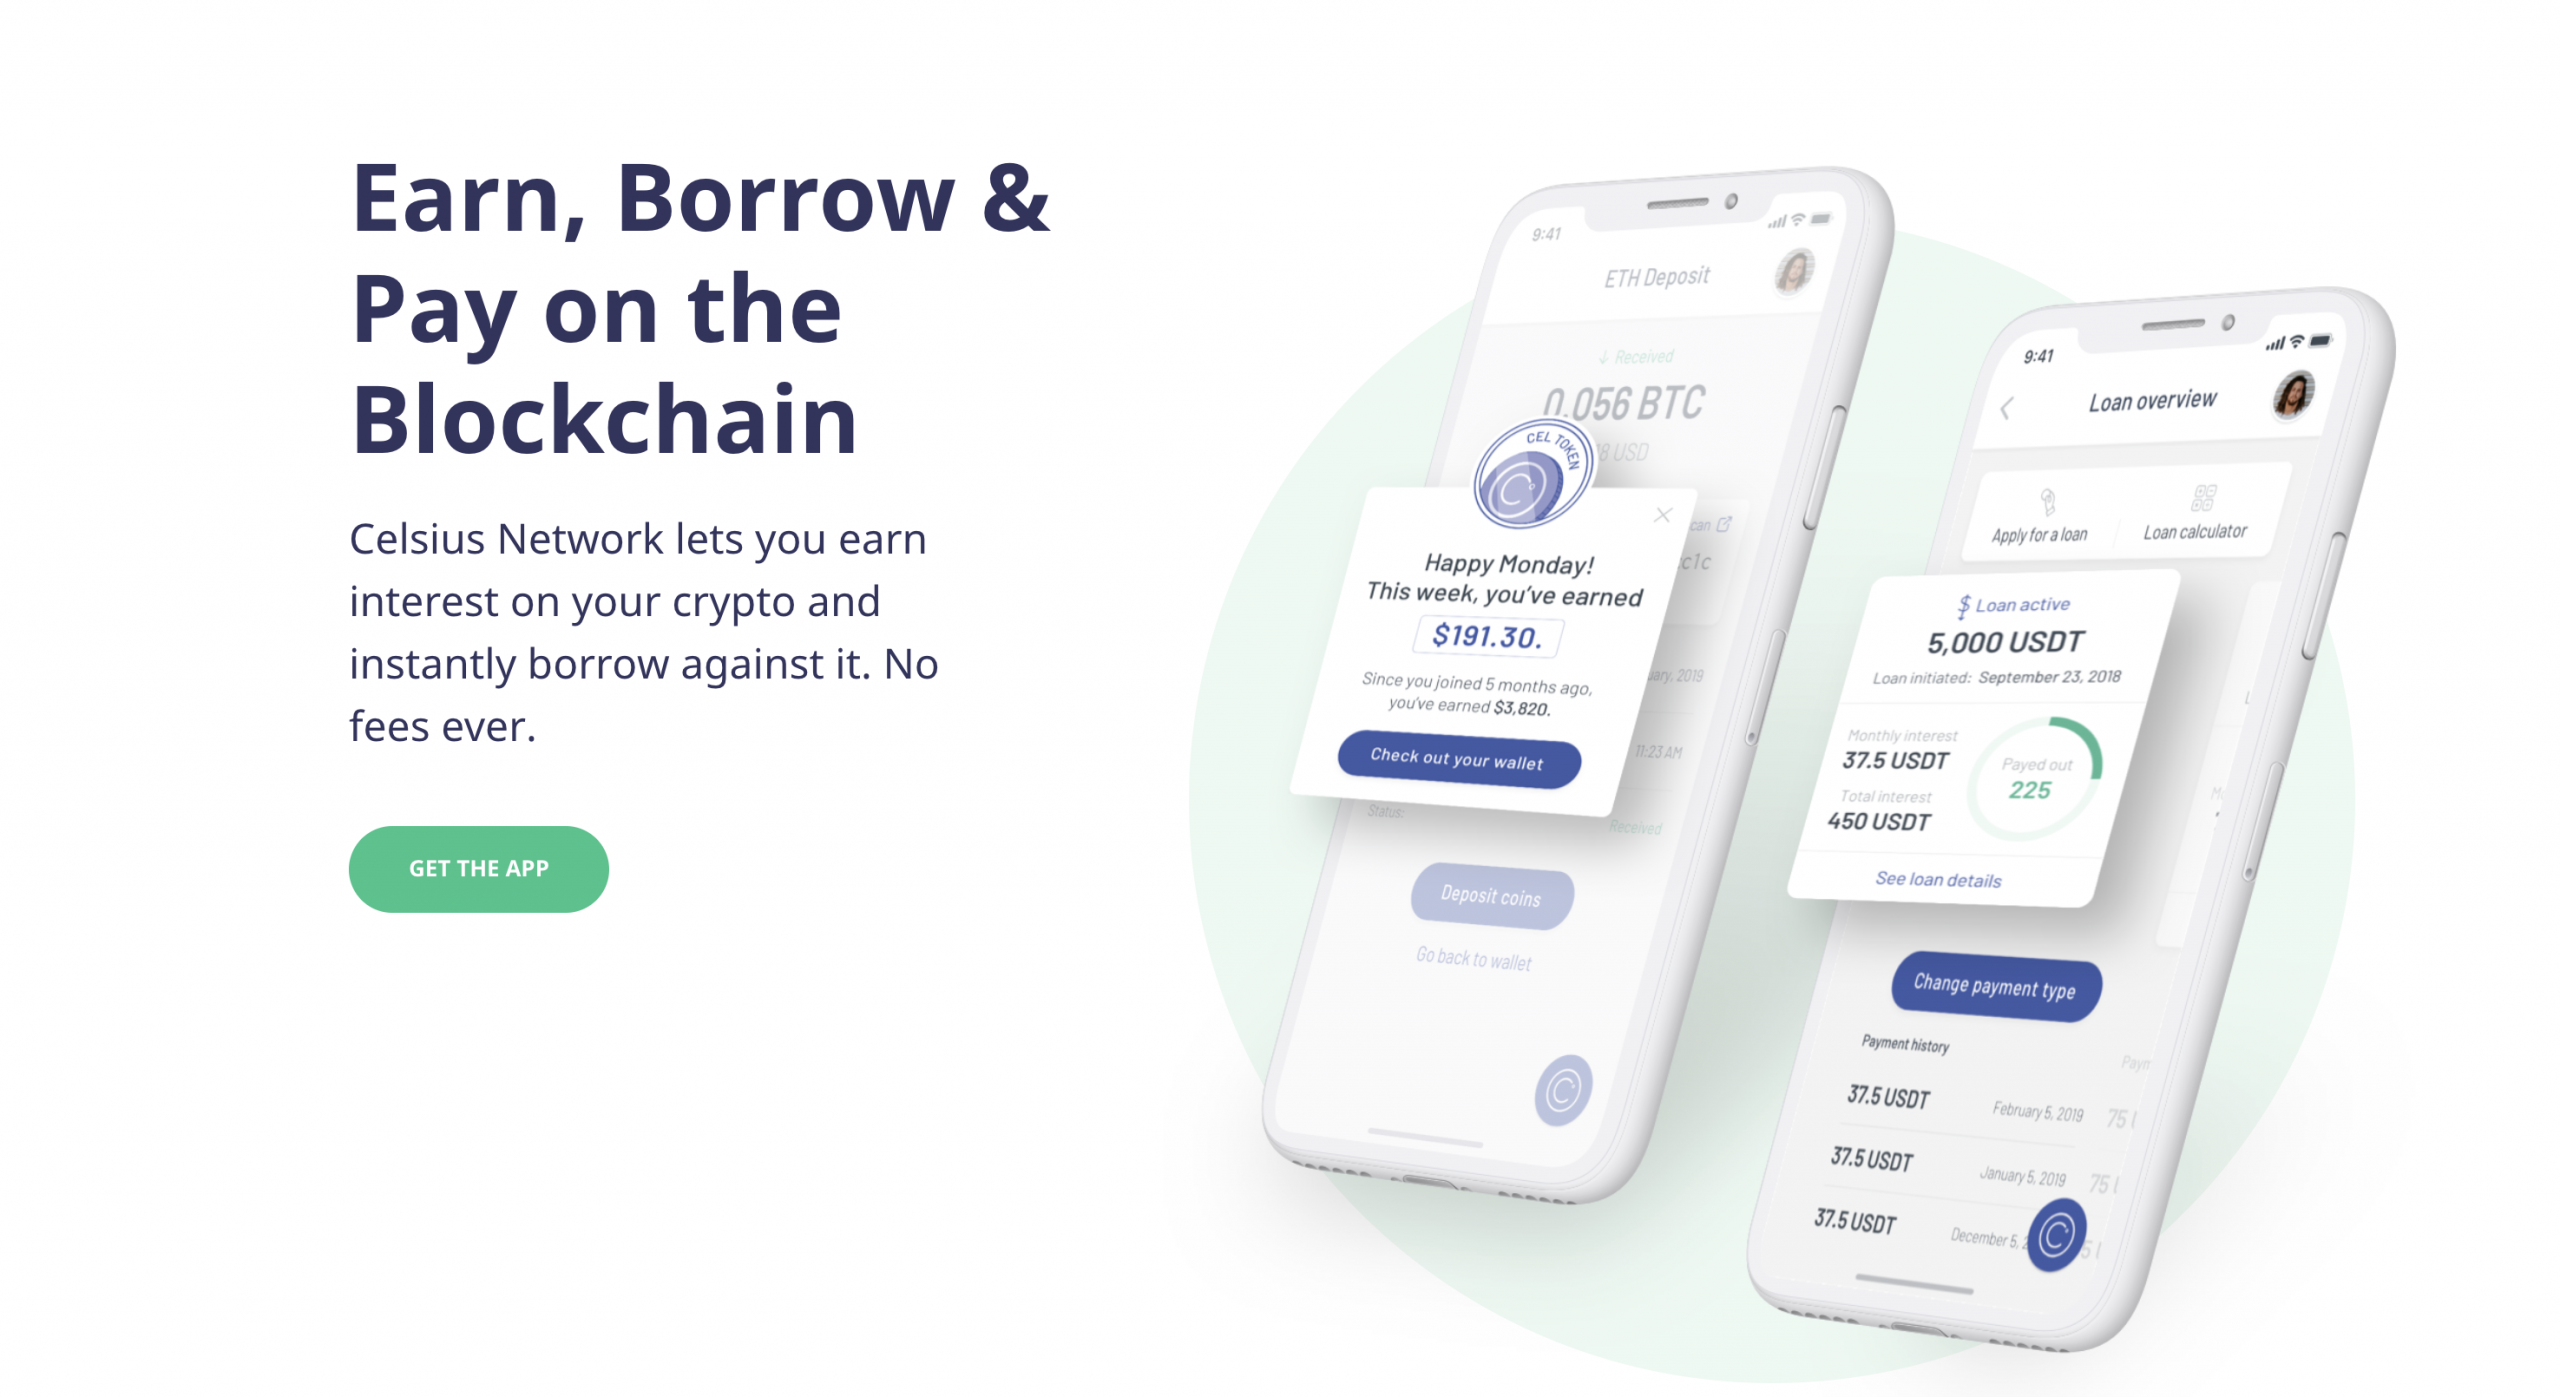 Celsius Network earn interest and borrow funds with cryptocurrency-backed loans